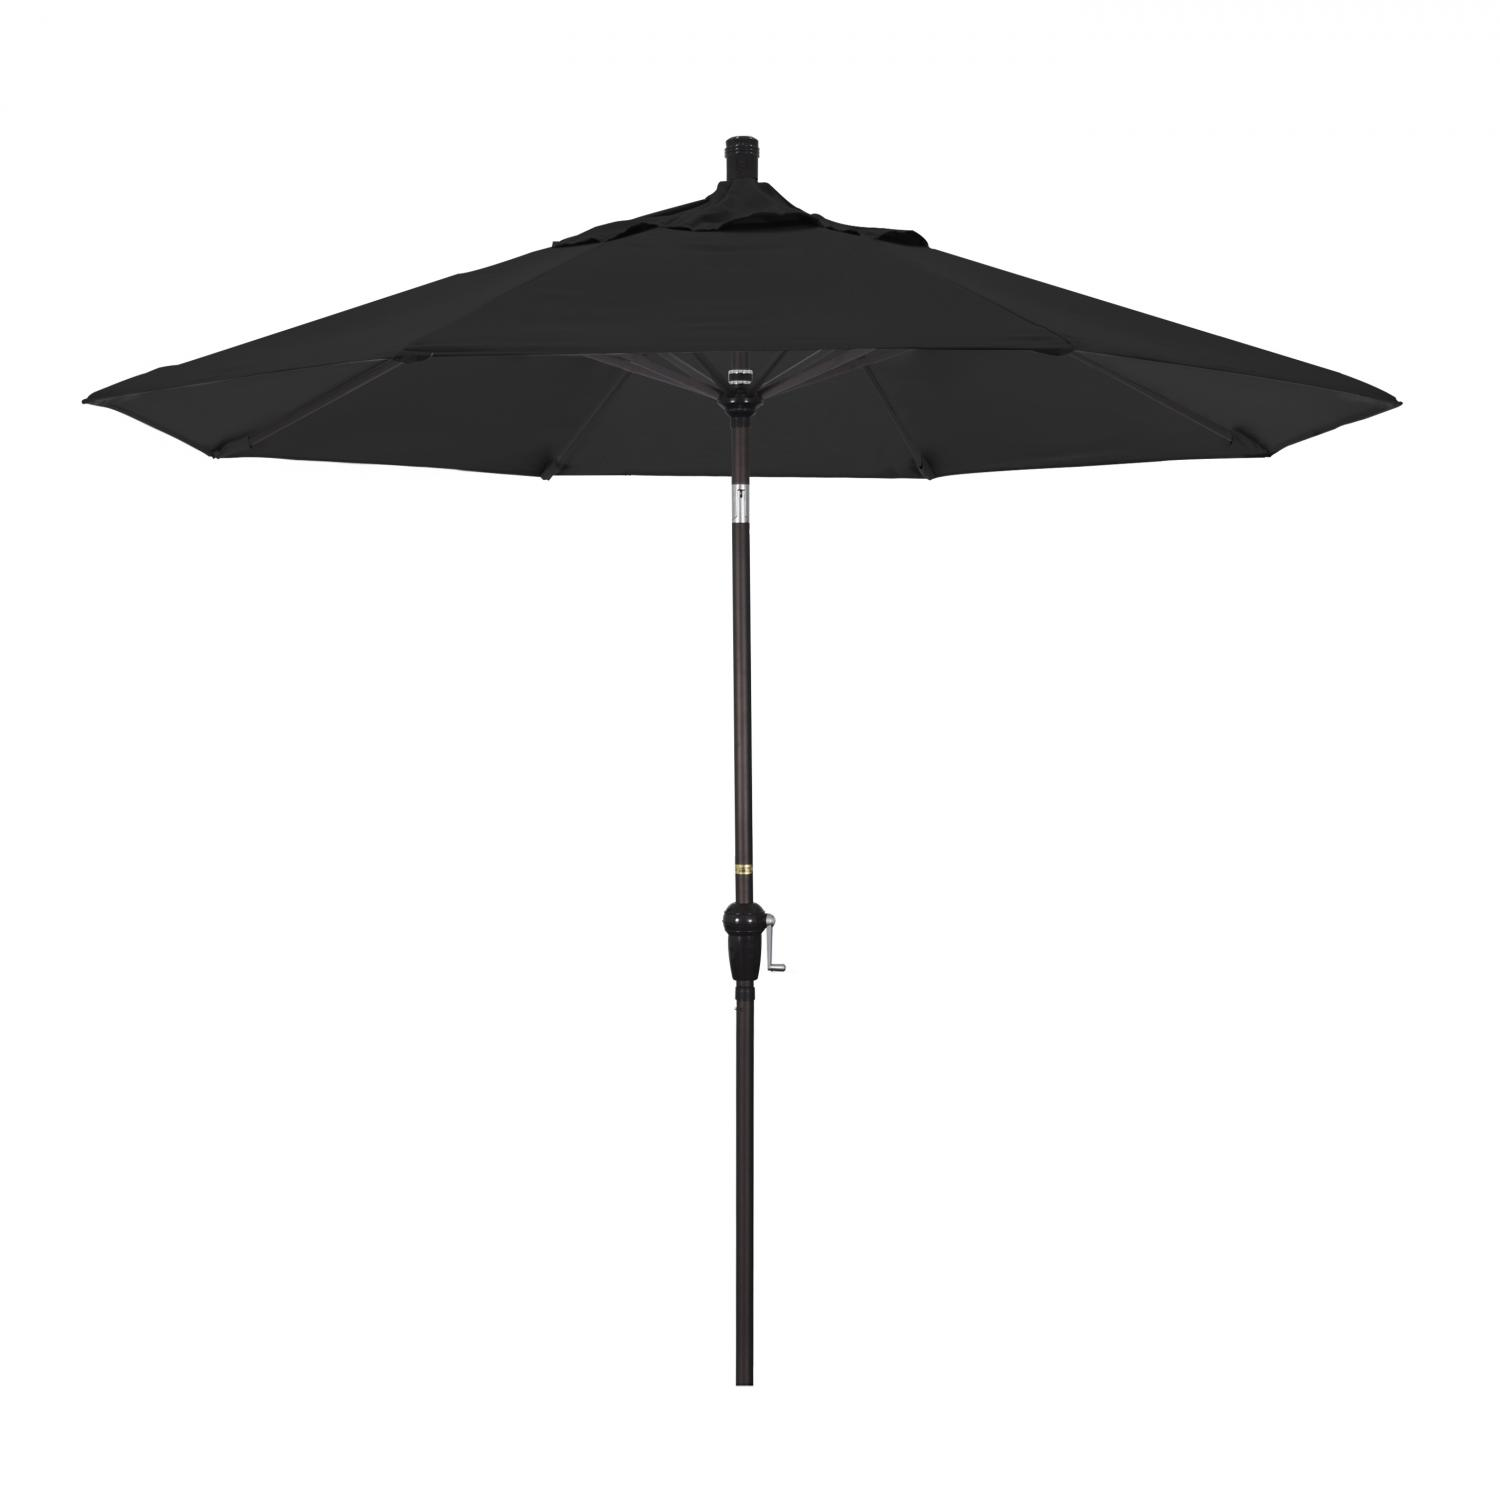 California Umbrella 9 Ft. Octagonal Aluminum Auto Tilt Patio Umbrella W/ Crank Lift & Aluminum Ribs - Bronze Frame / Sunbrella Canvas Black Canopy